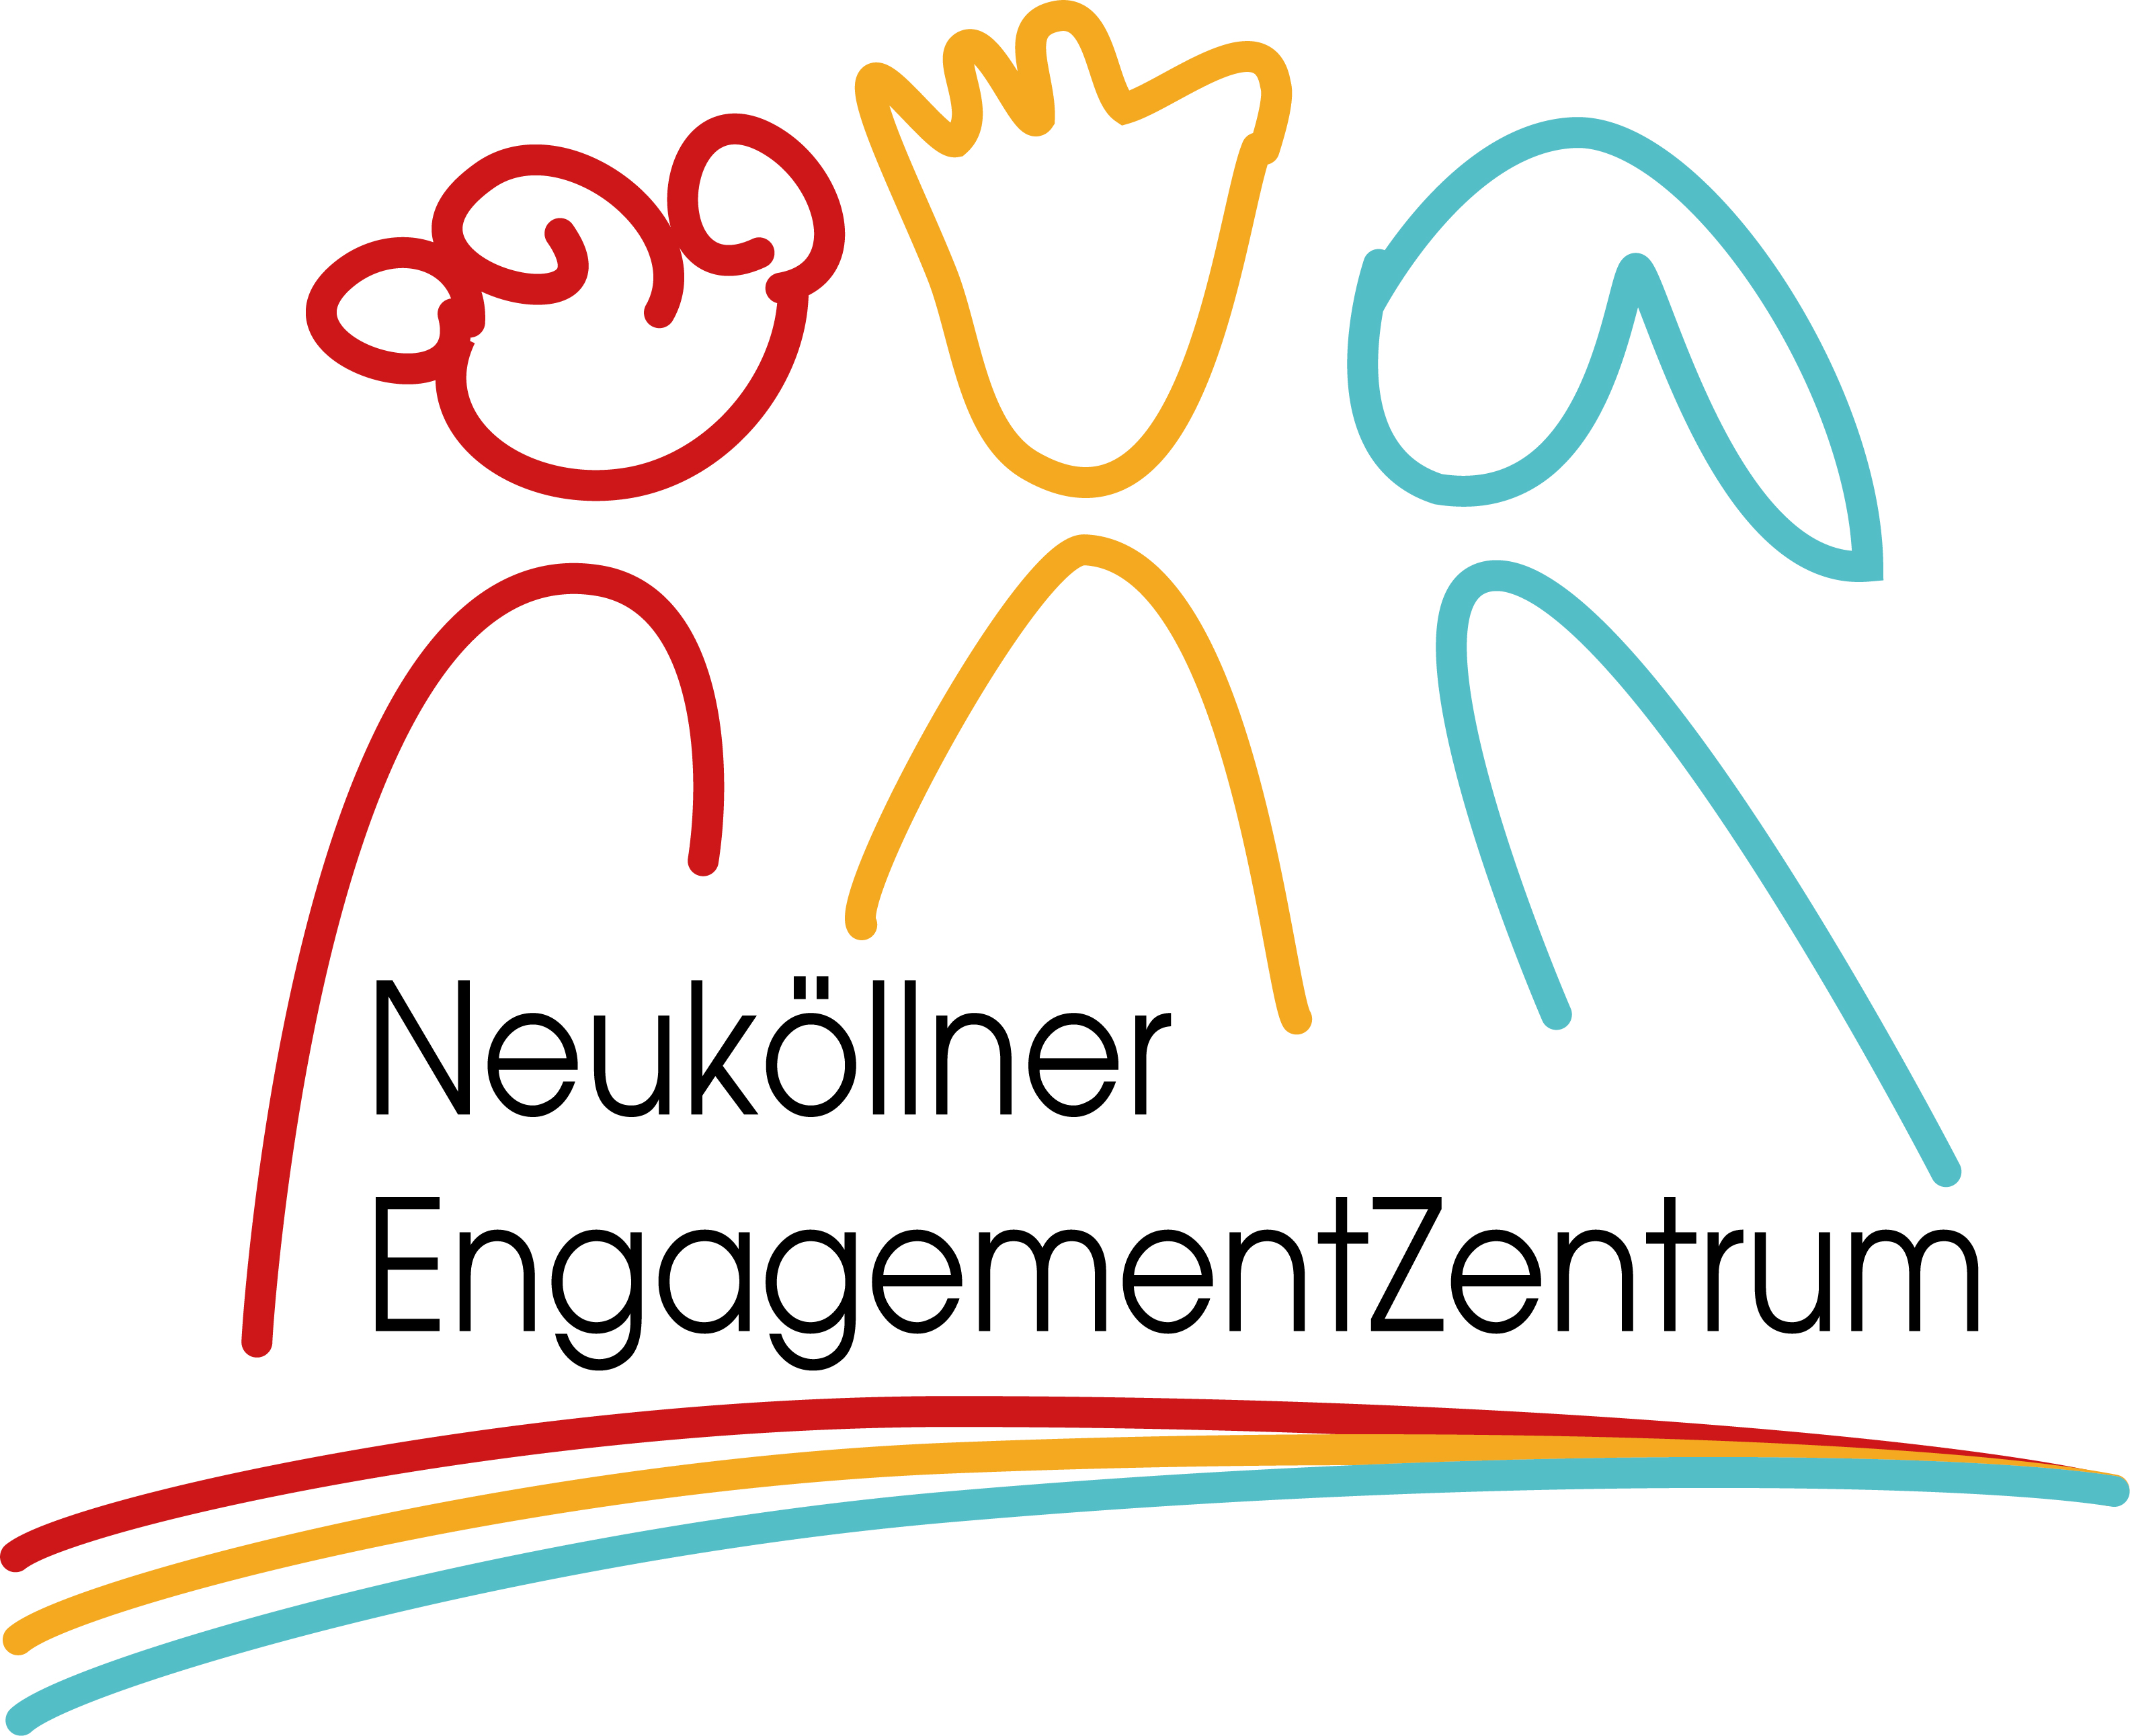 Neuköllner Engagementzentrum